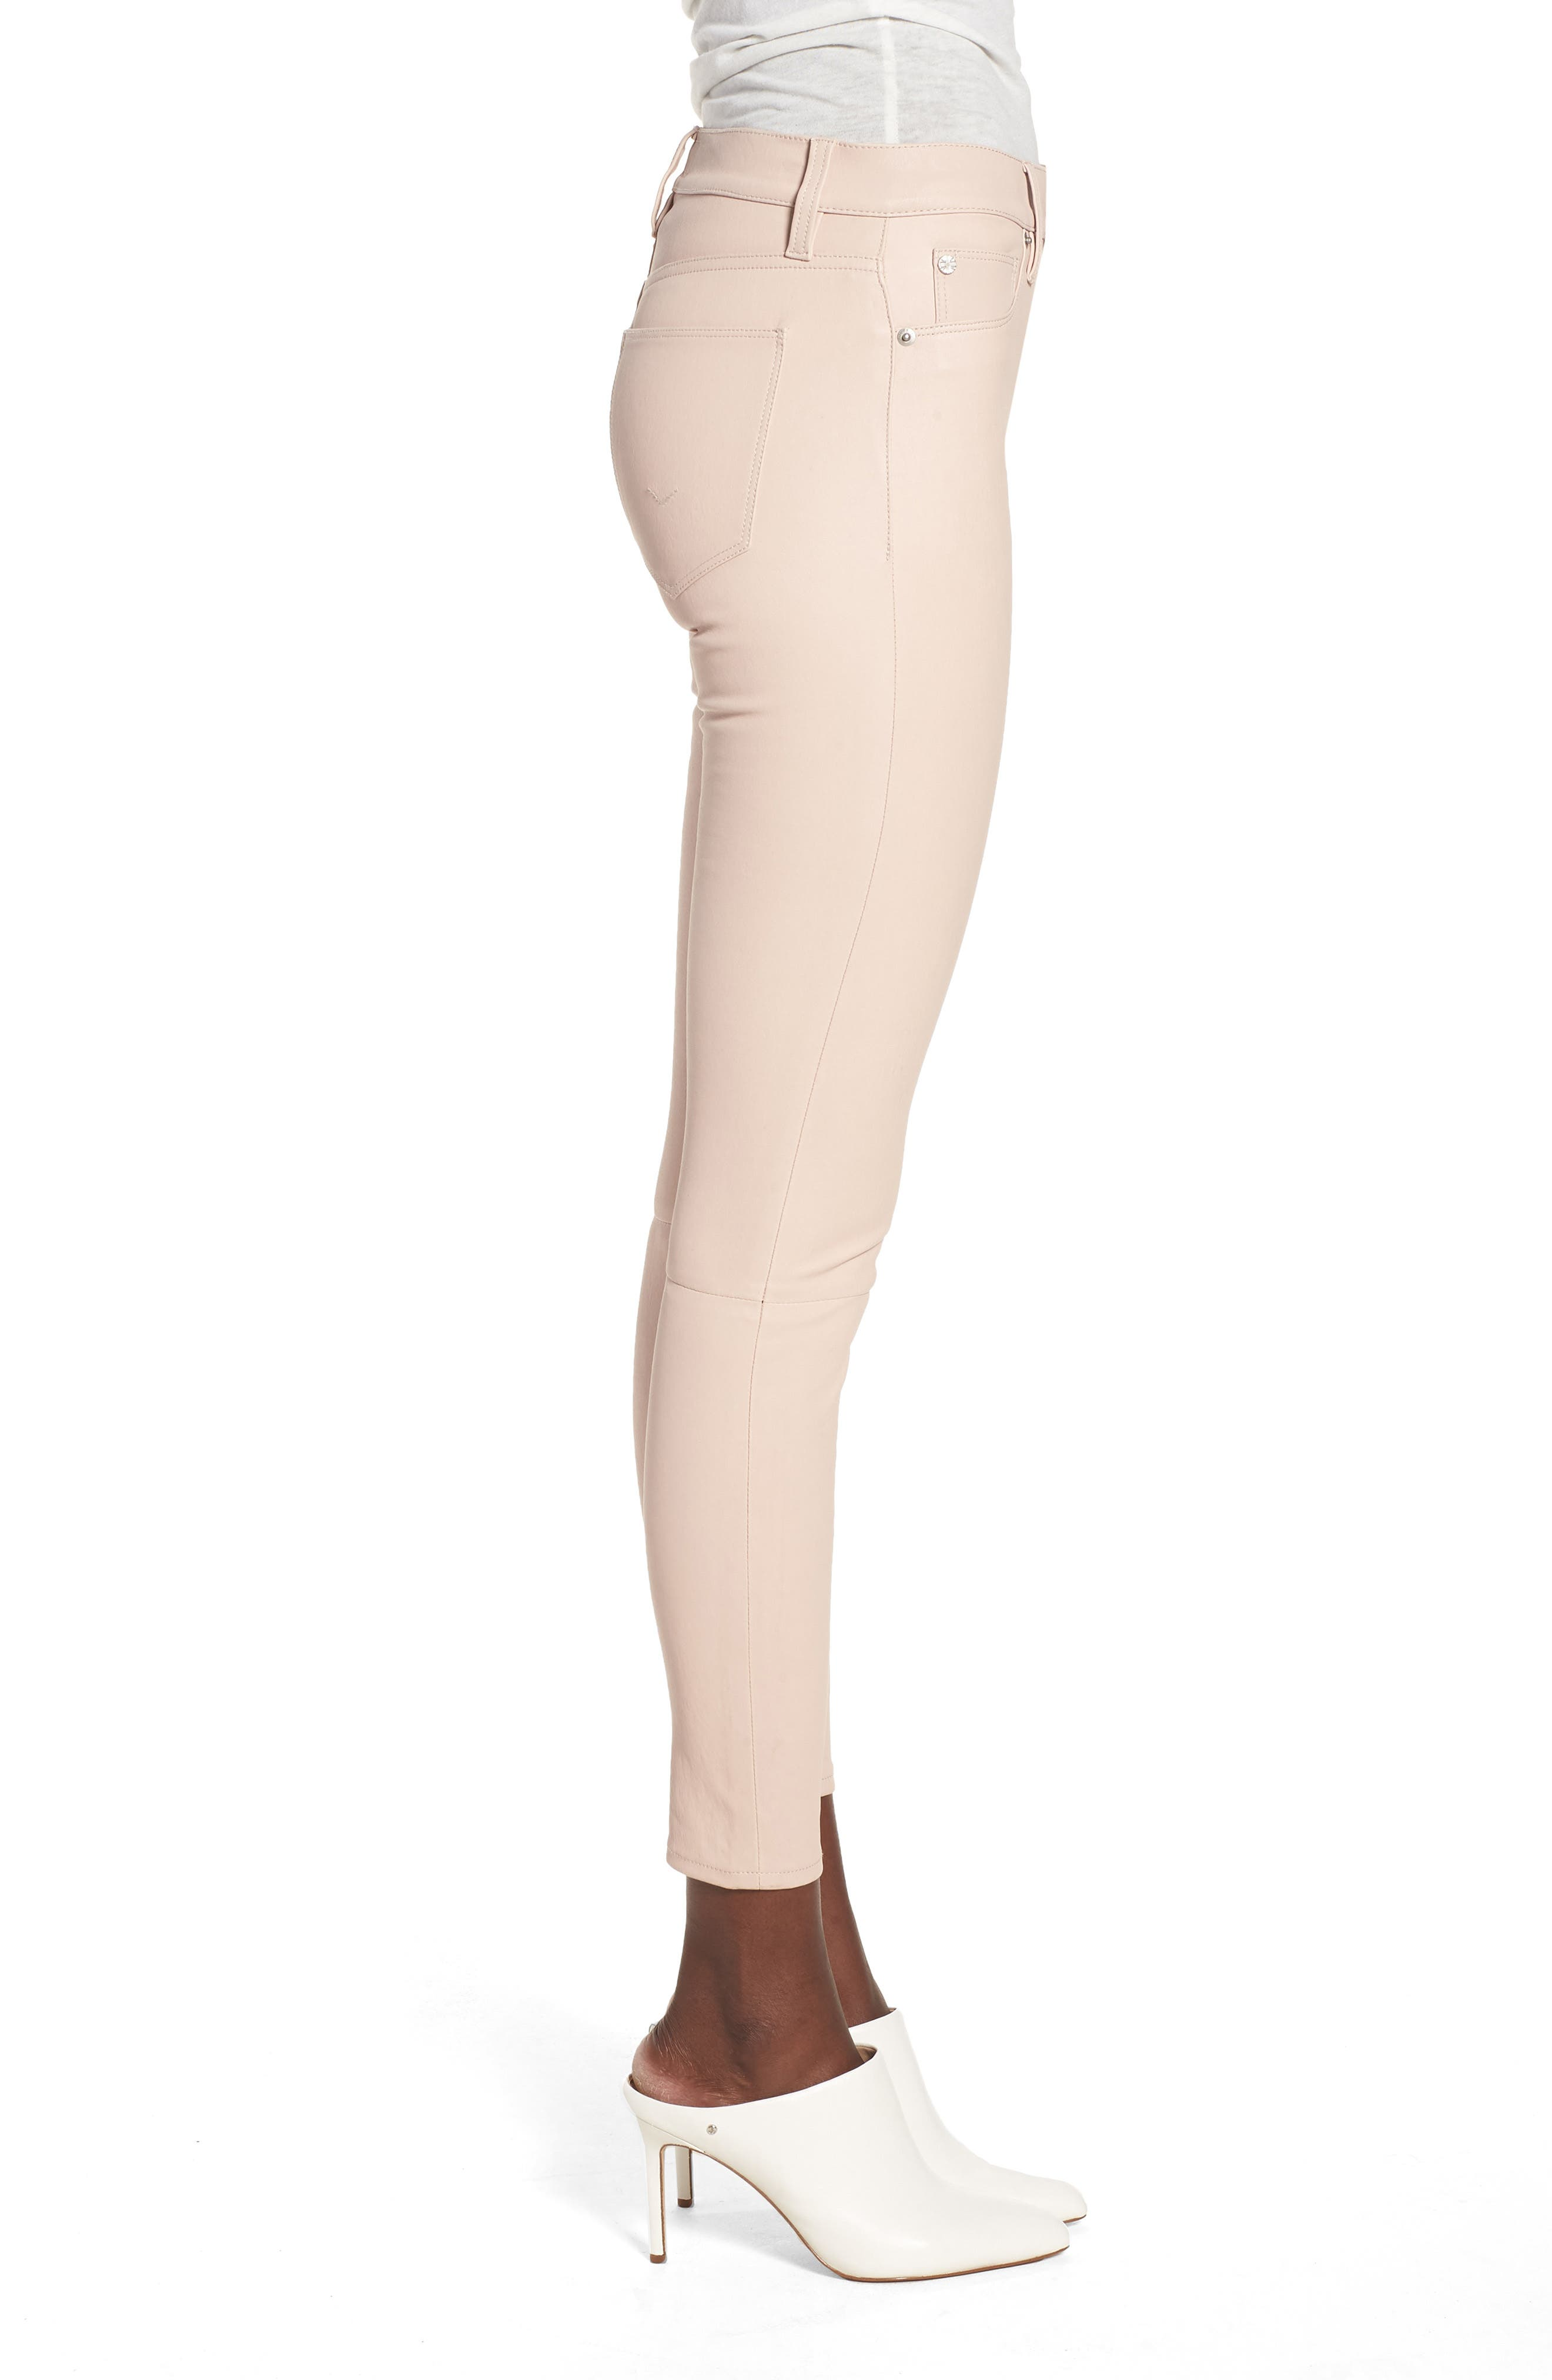 Barbara High Waist Ankle Skinny Leather Jeans,                             Alternate thumbnail 3, color,                             Blushing